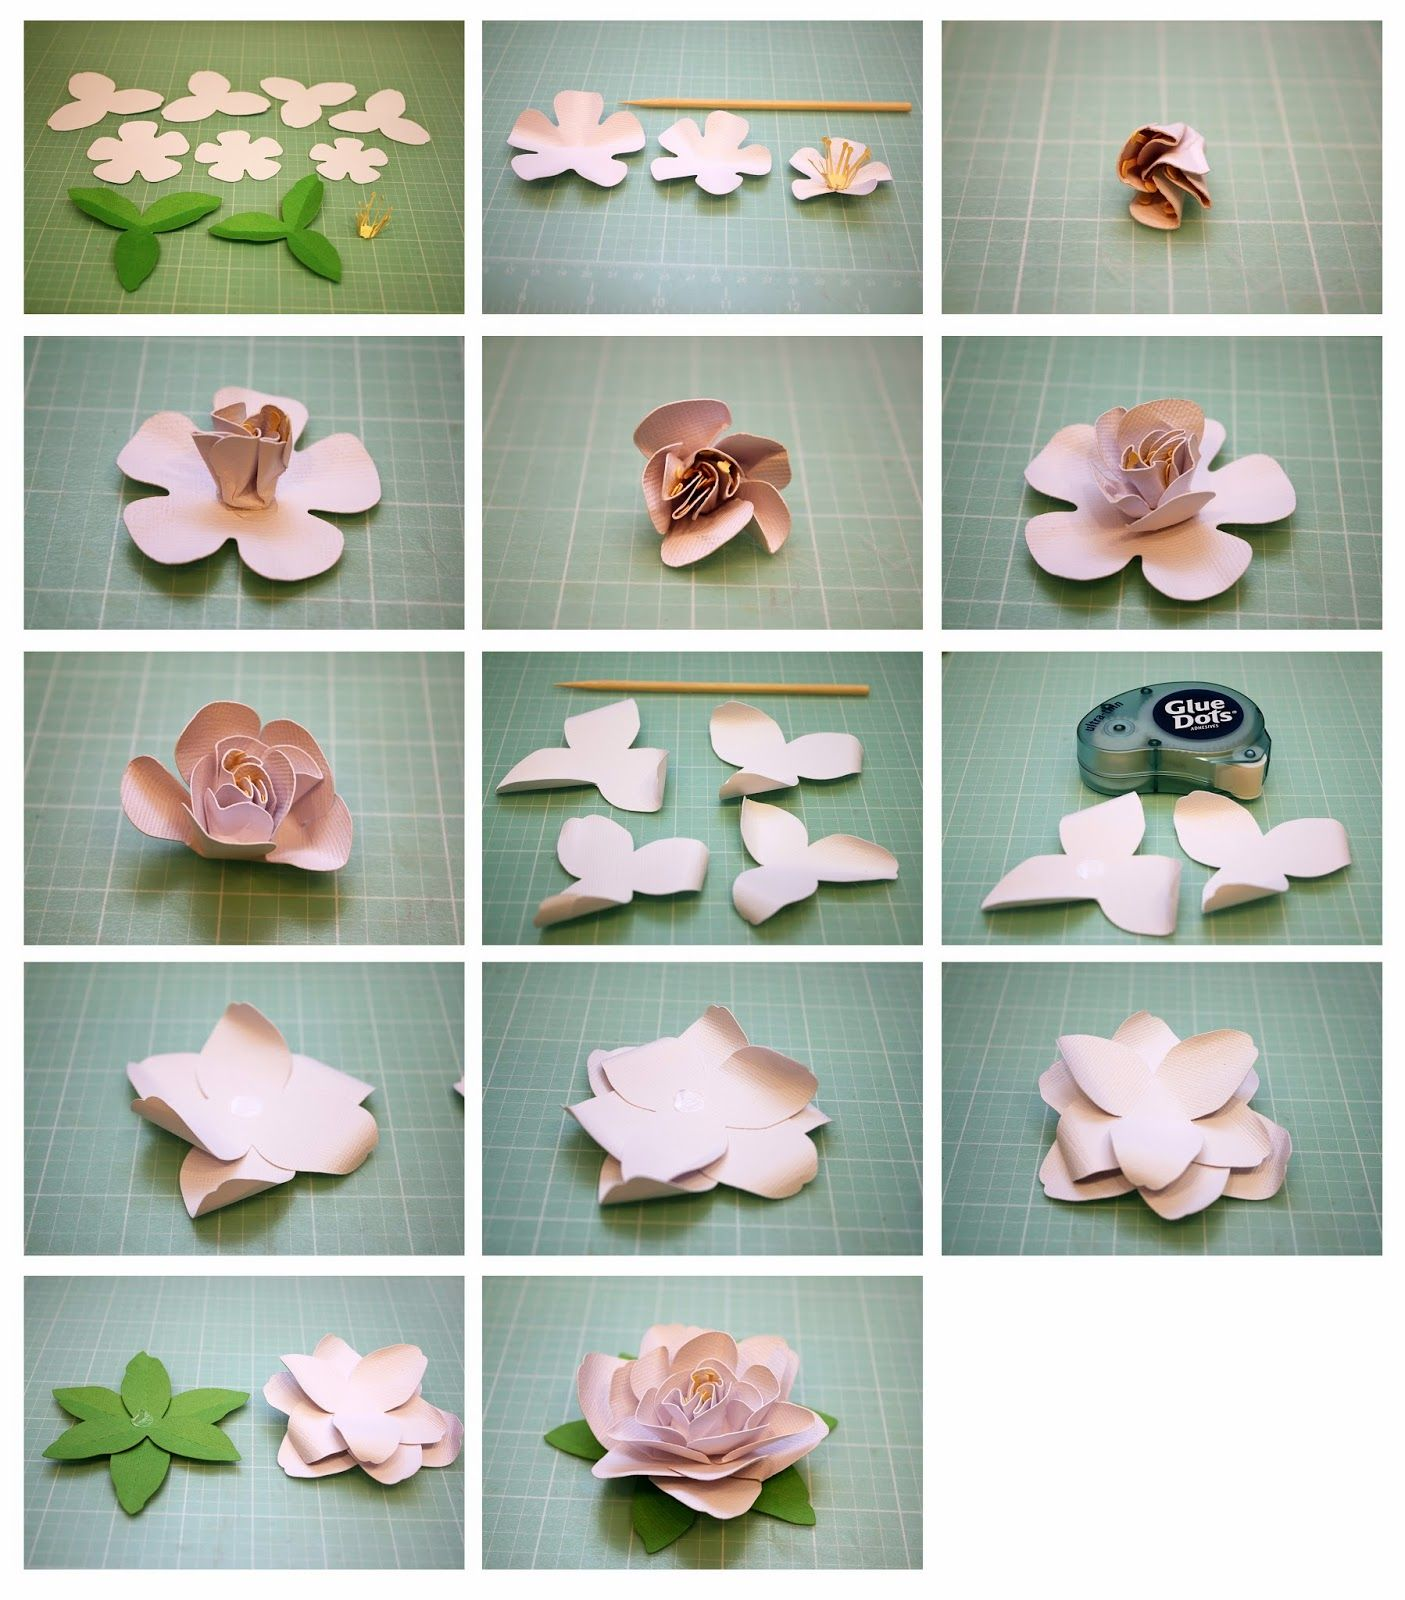 Begonia and gardenia 3d paper flowers paper crafts pinterest begonia and gardenia 3d paper flowers mightylinksfo